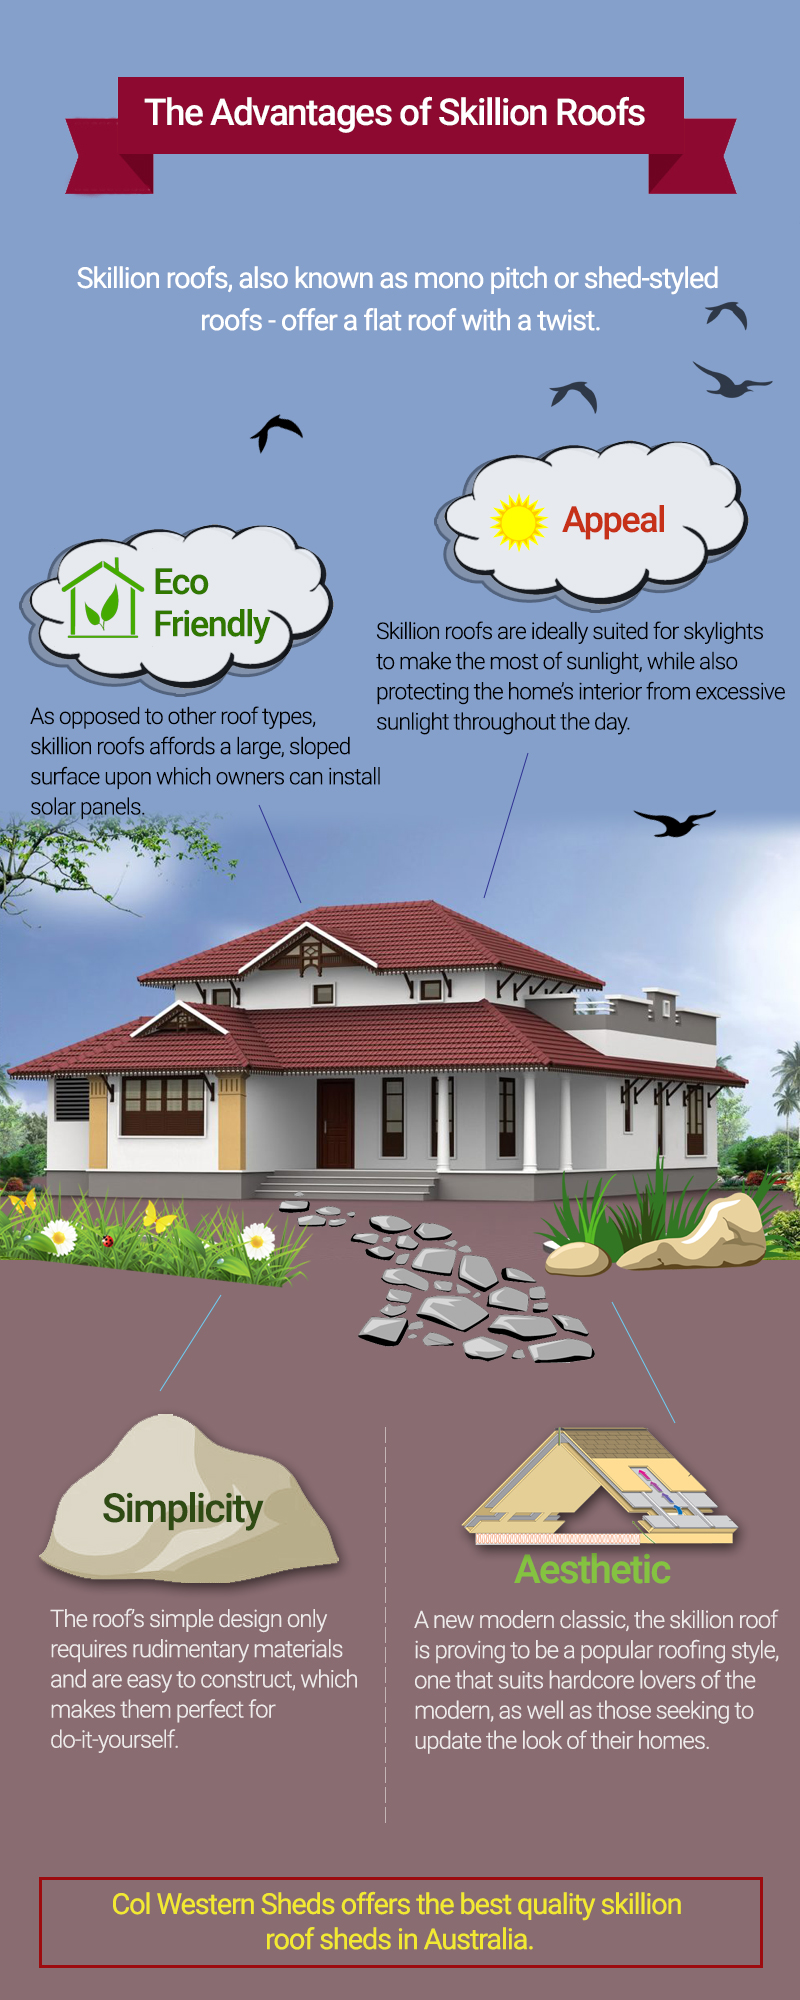 The advantages of skillion roofs